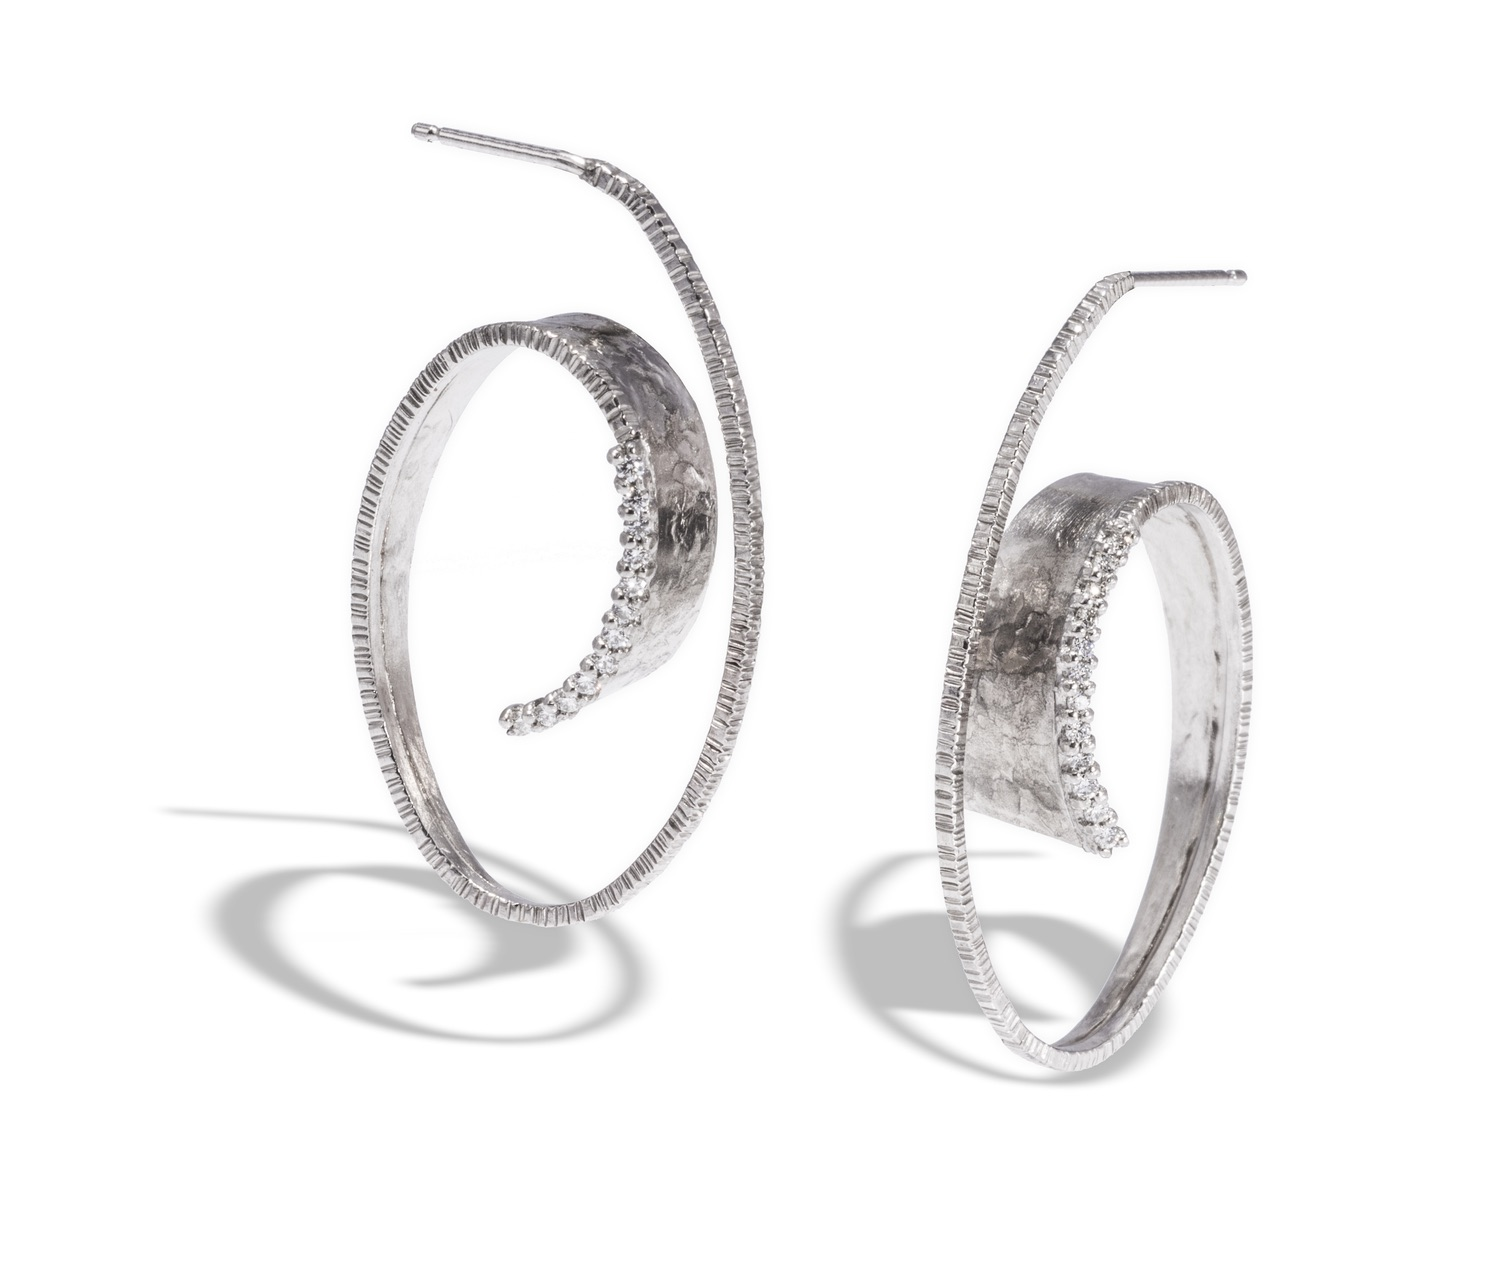 The Jewel - Elizabeth Garvin - Lookbook - Silver and Diamond Swirl Earrings